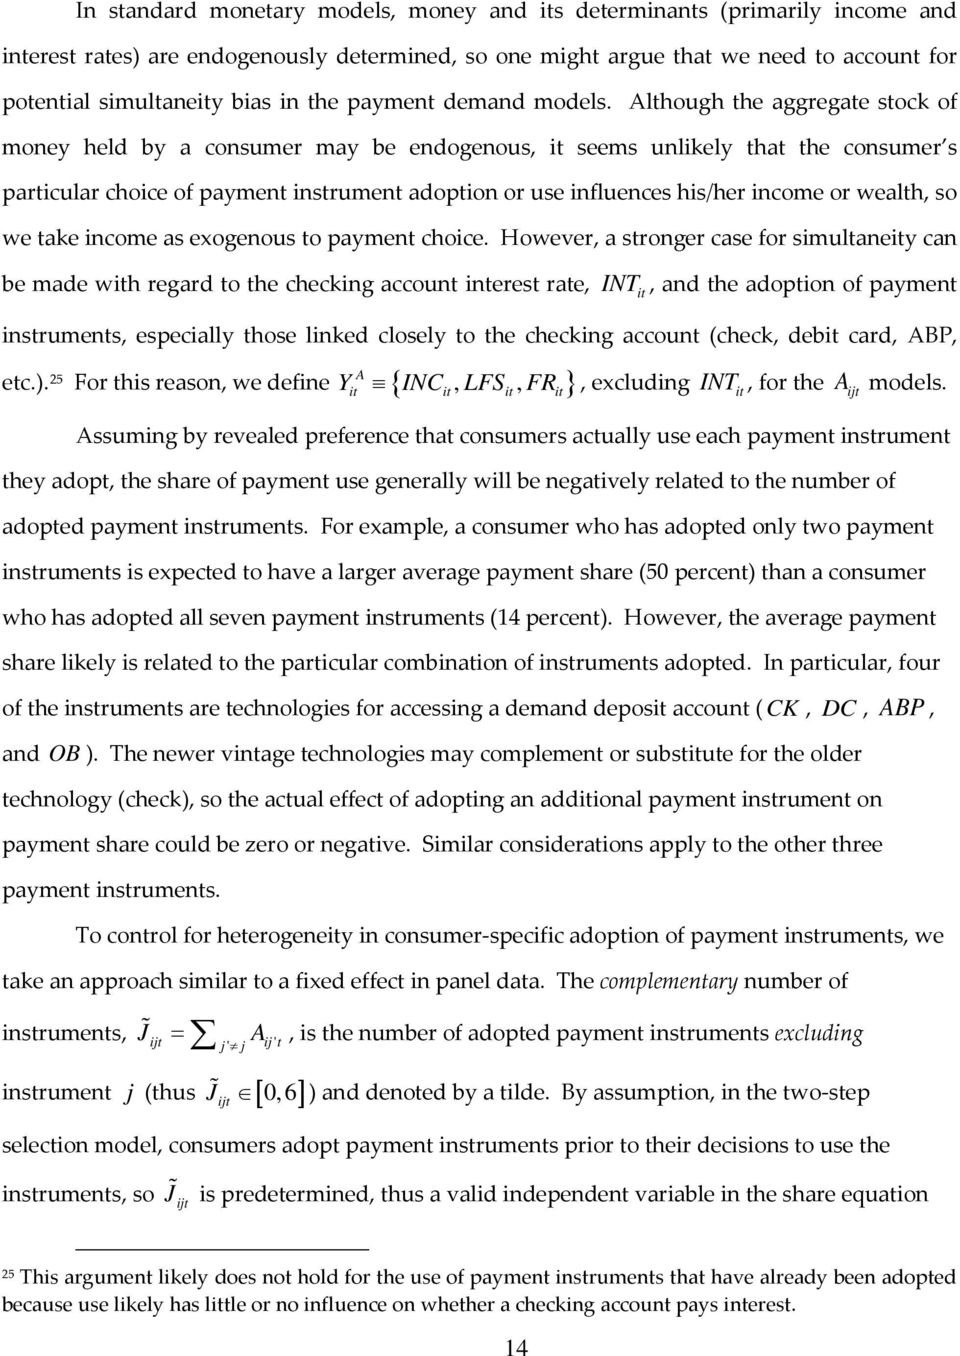 Although the aggregate stock of money held by a consumer may be endogenous, it seems unlikely that the consumer s particular choice of payment instrument adoption or use influences his/her income or